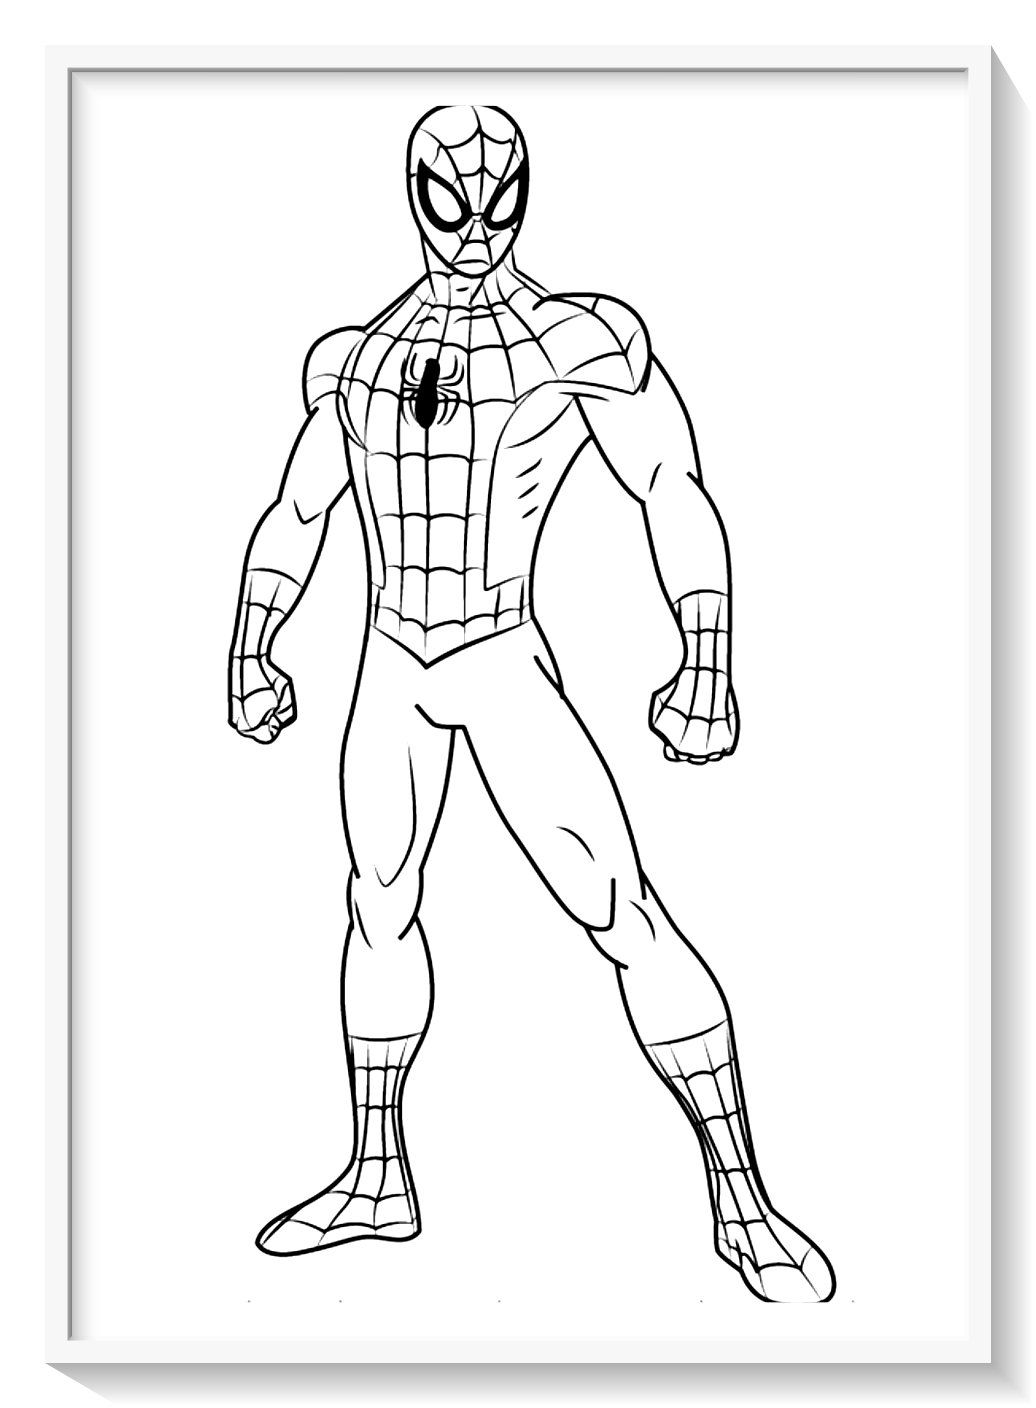 Pin by Bucky Moore on coloring pages | Coloring pages for kids